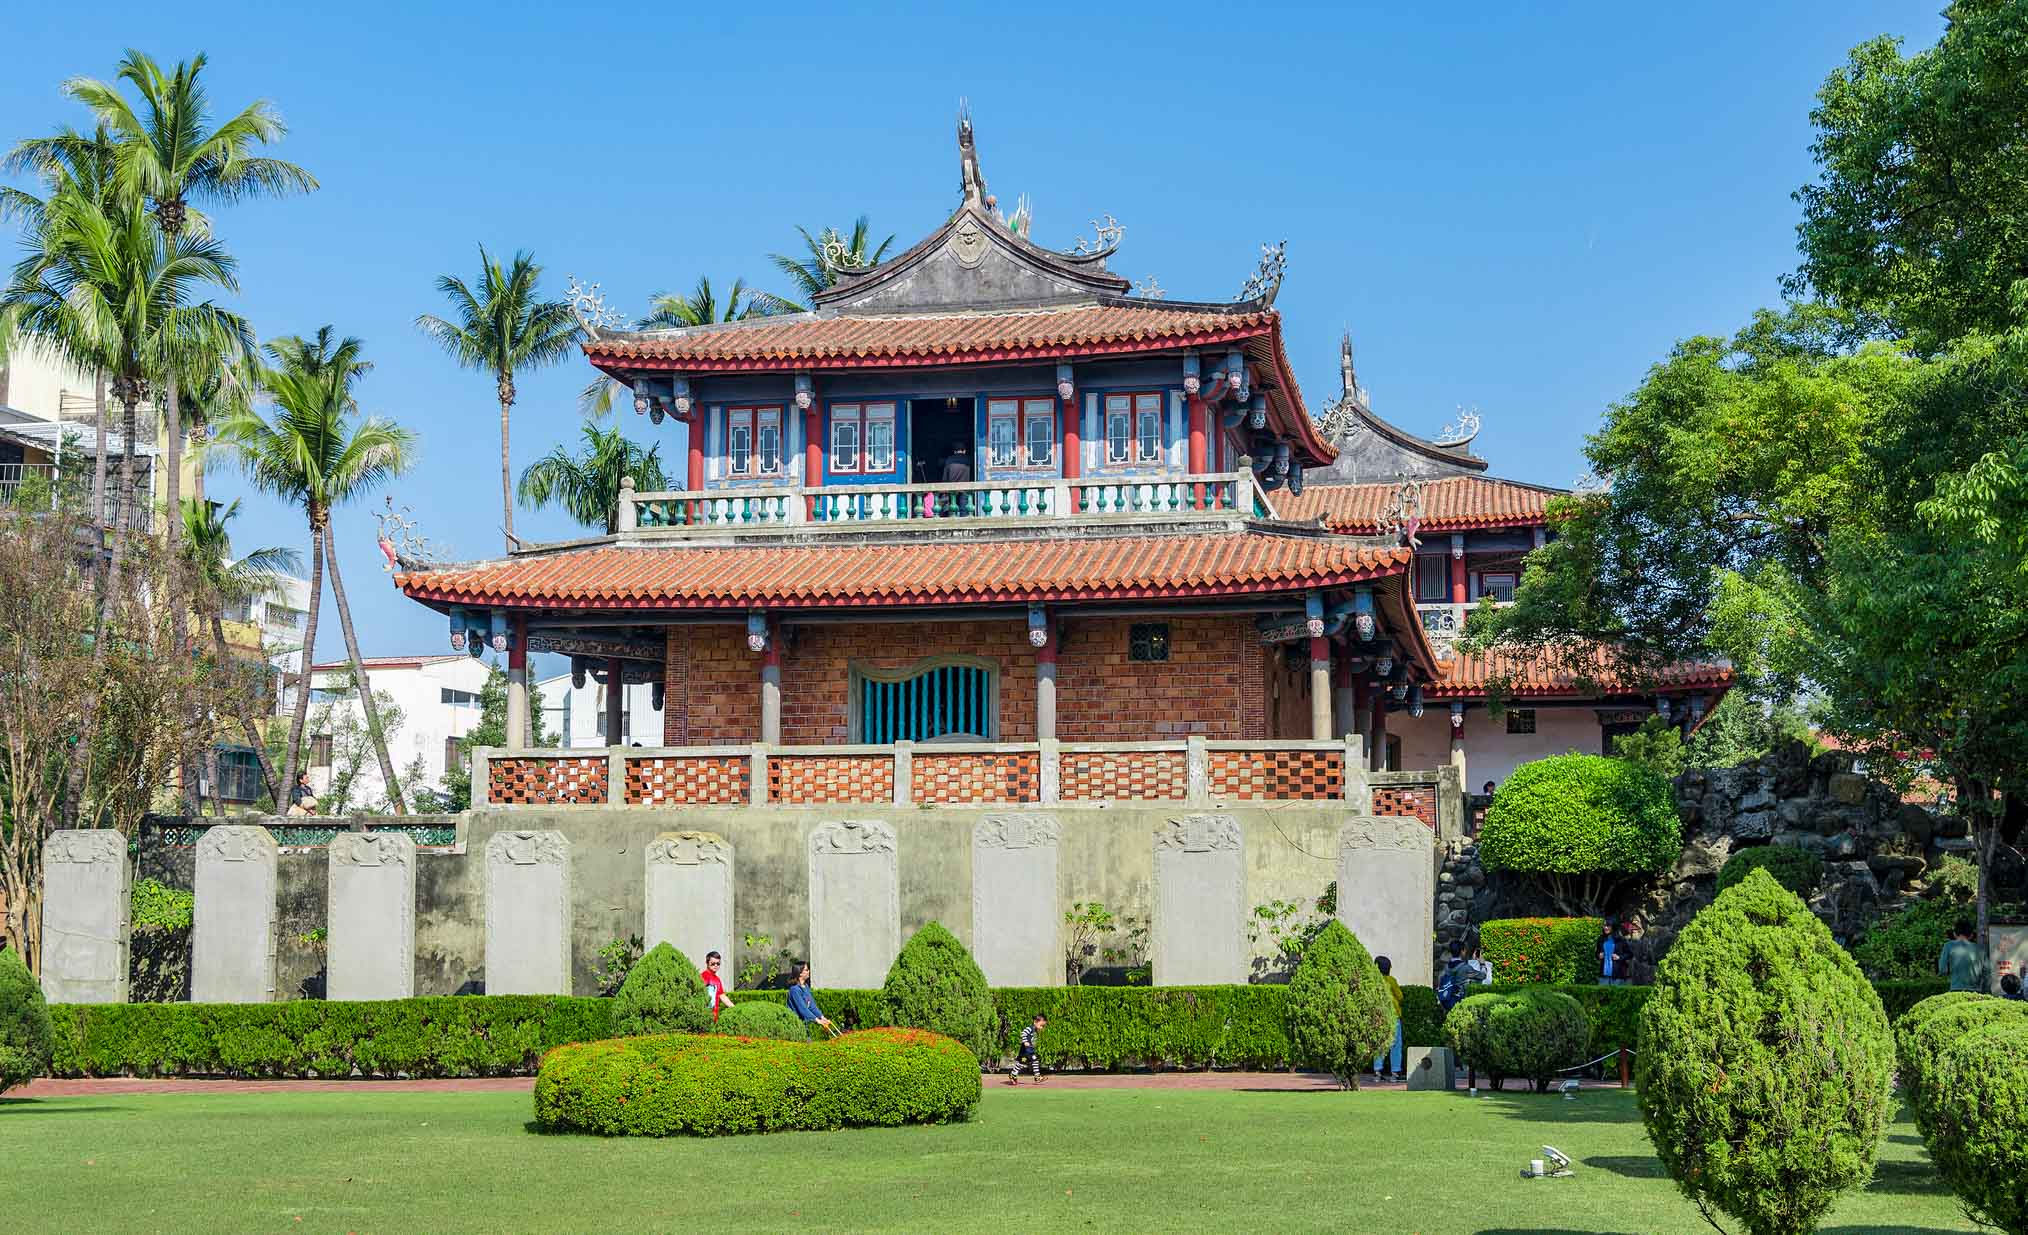 Things To Do in Tainan Taiwan#8 – Chihkan Towers (Fort Provintia) 3